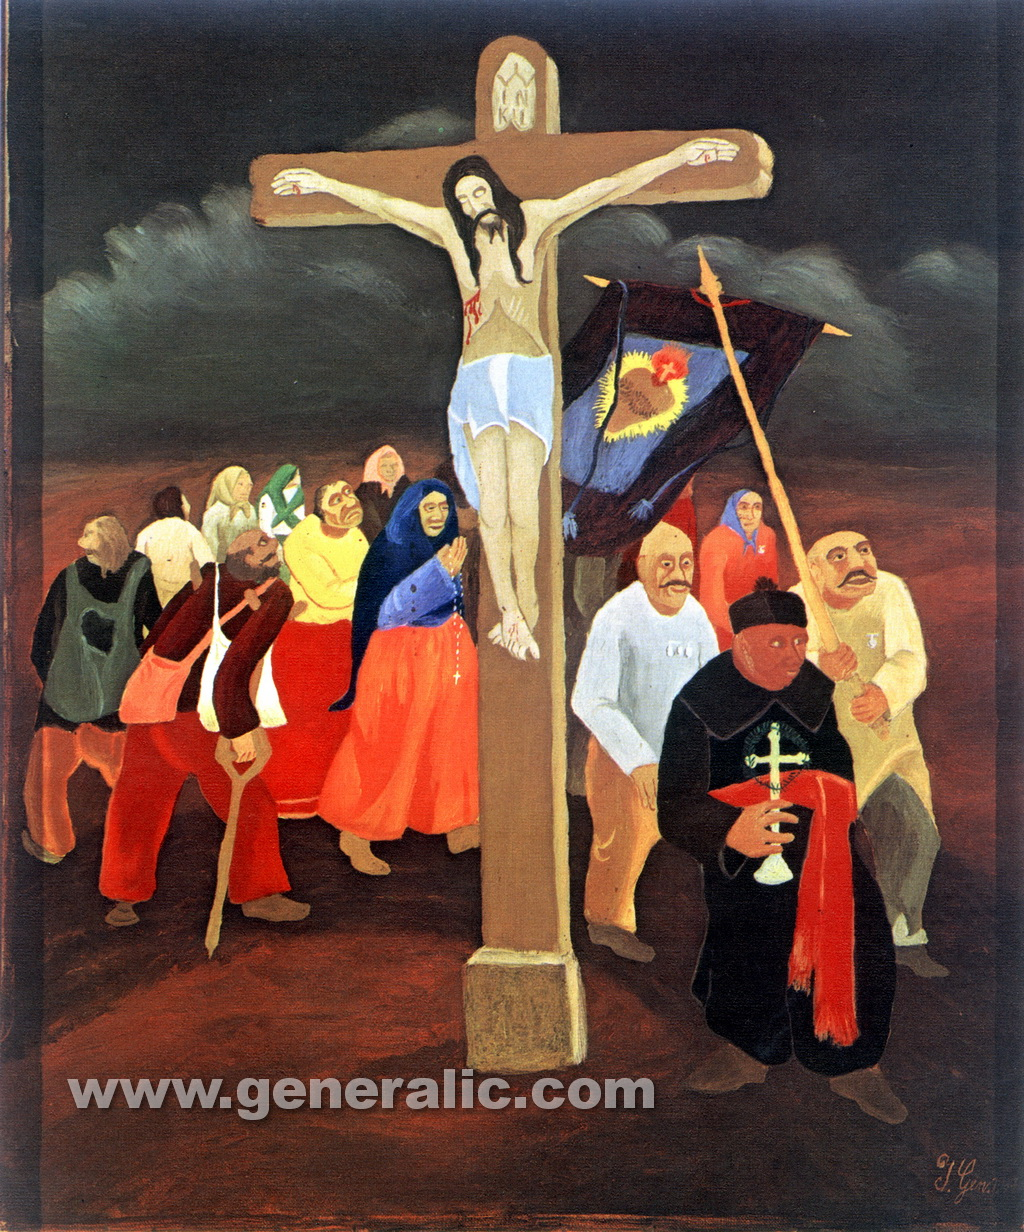 Ivan Generalic, 1937, Procession by the cross, oil on canvas, 56x46 cm